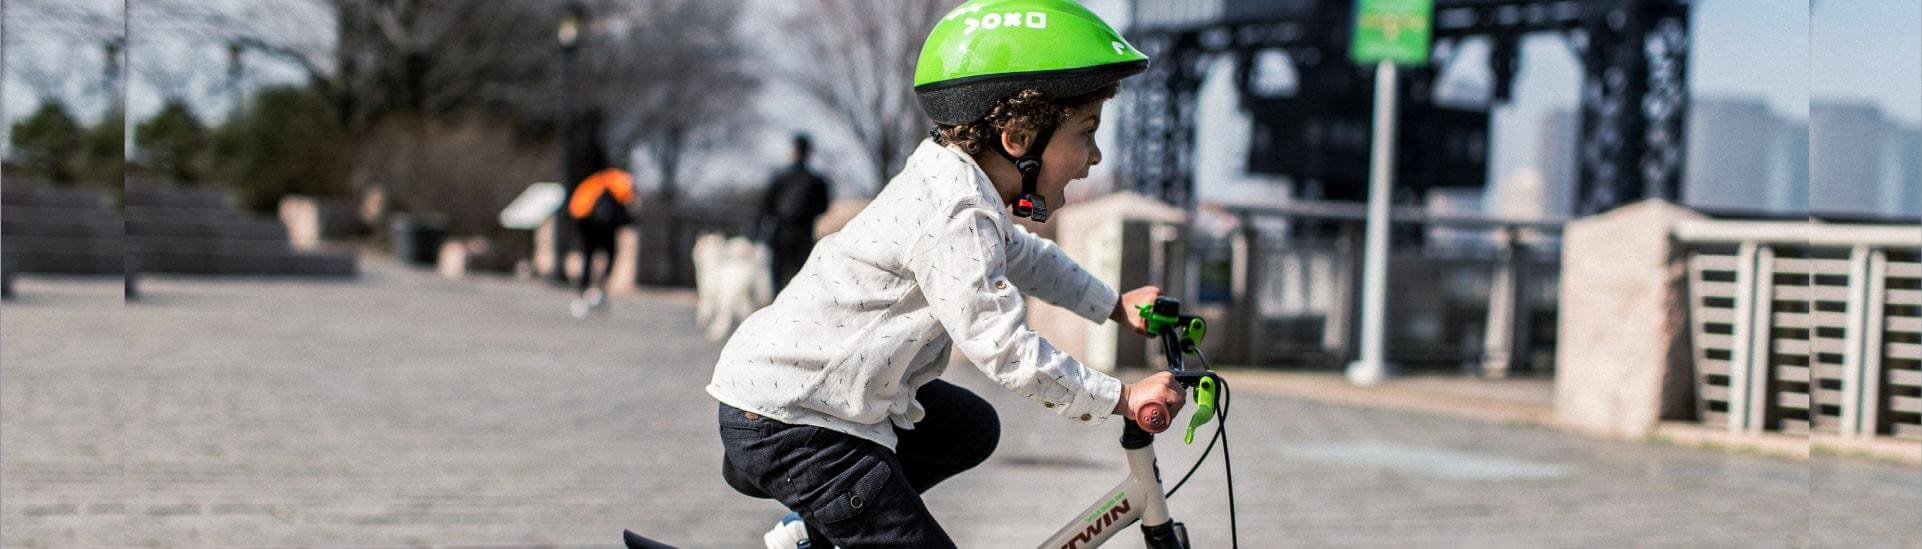 How To Teach Your Kid To Ride A Bicycle (4 Steps)